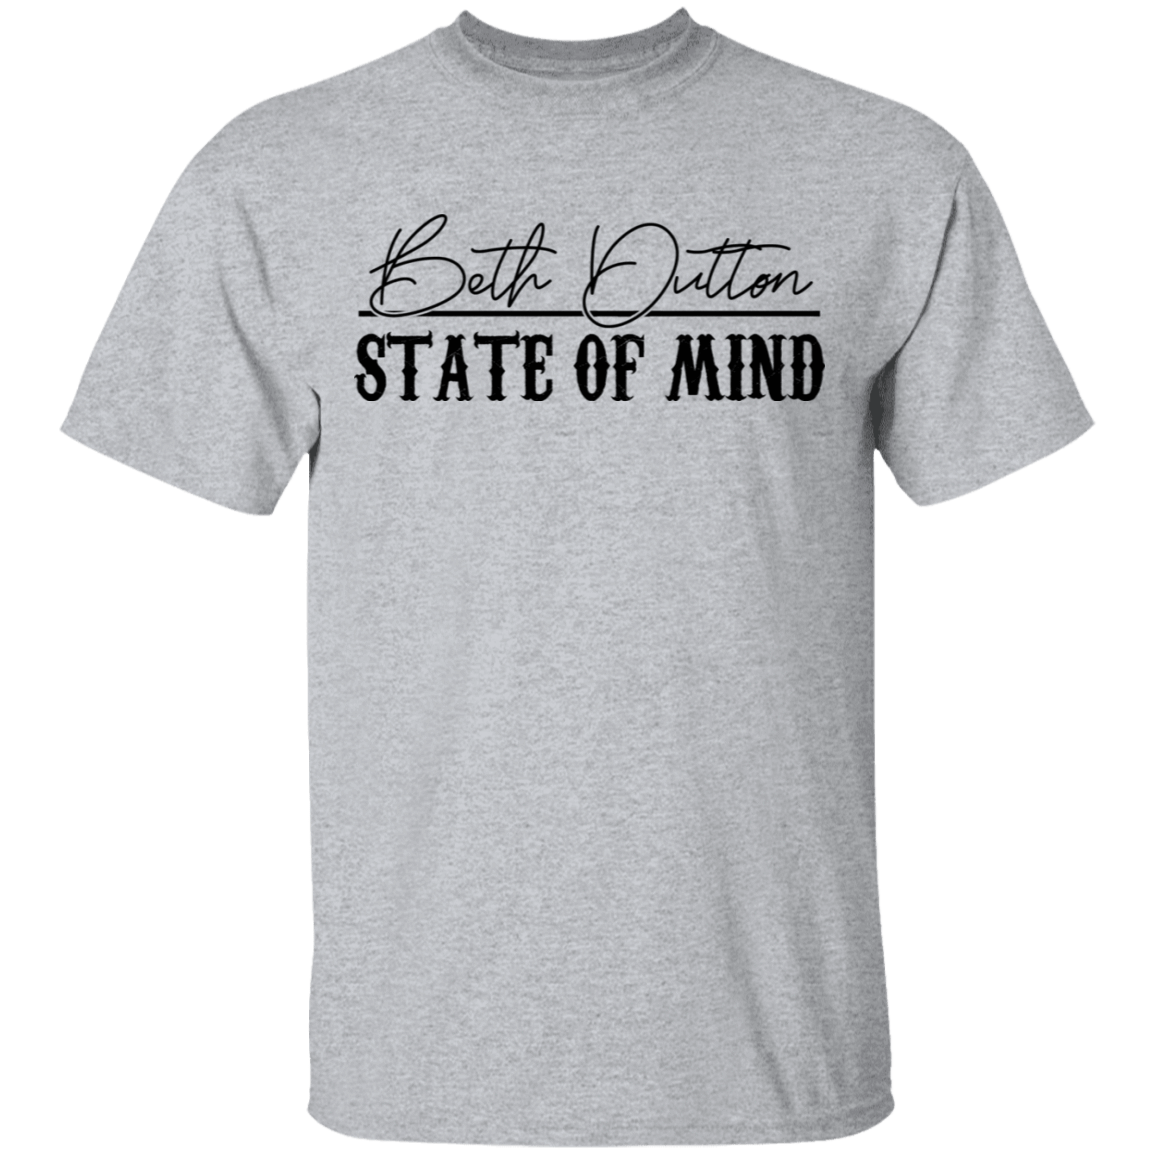 Beth Dutton State Of Mind T-Shirts, Hoodies, Tank 1049-9972-81772890-48200 - Tee Ript